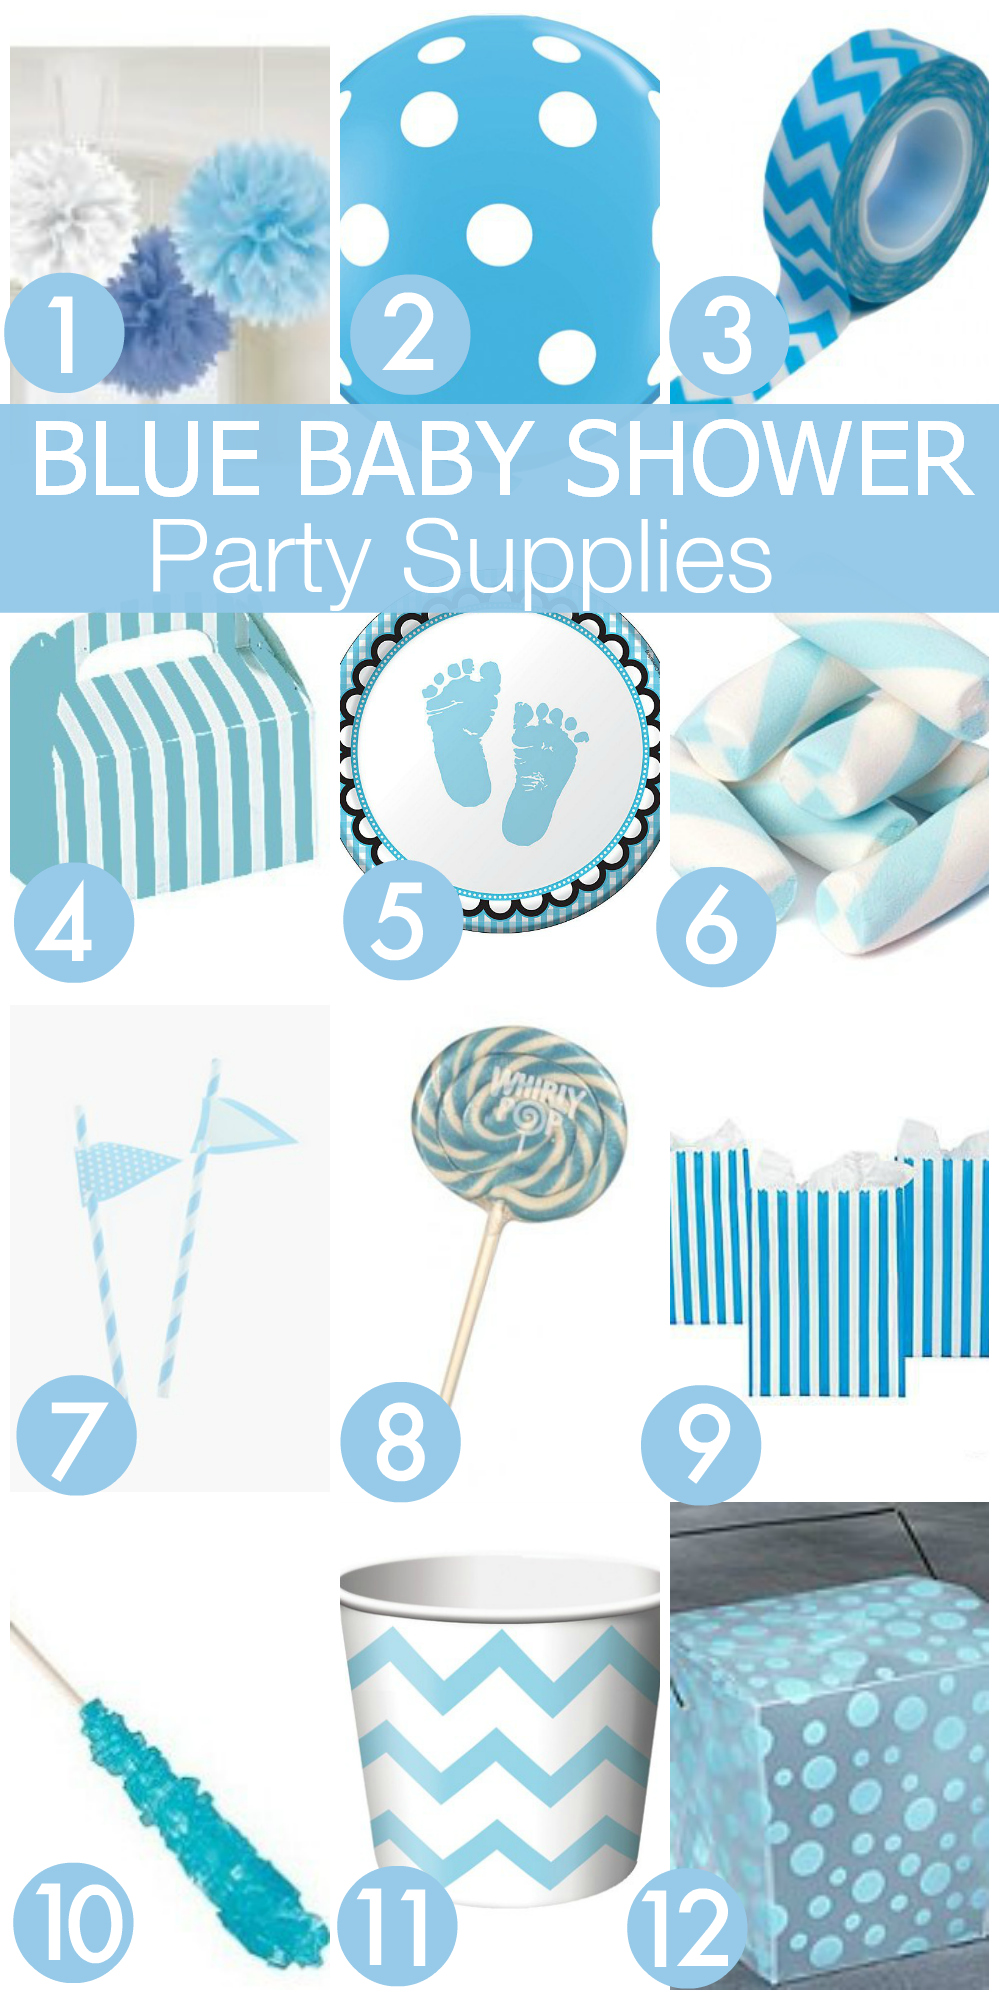 party supplies baby shower party supplies gender neutral baby shower